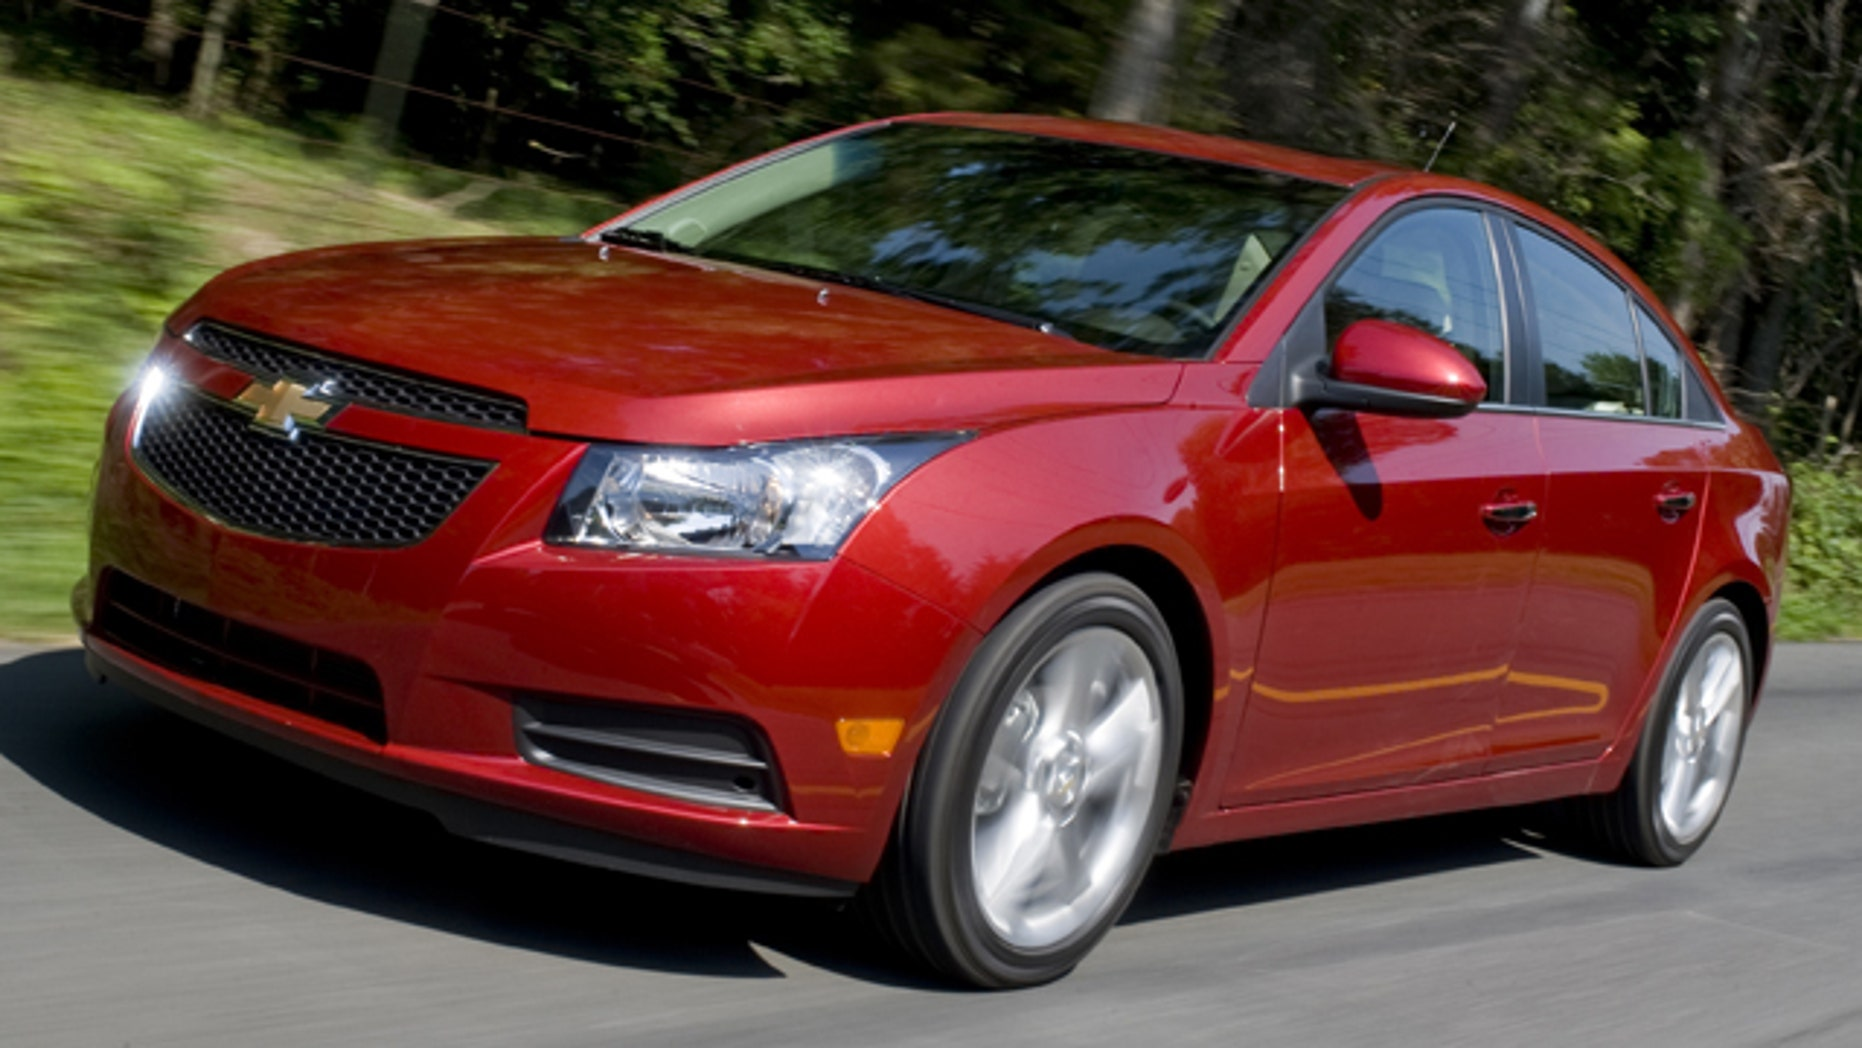 30 engine fires spur Chevy to recall 475,000 Cruze ...